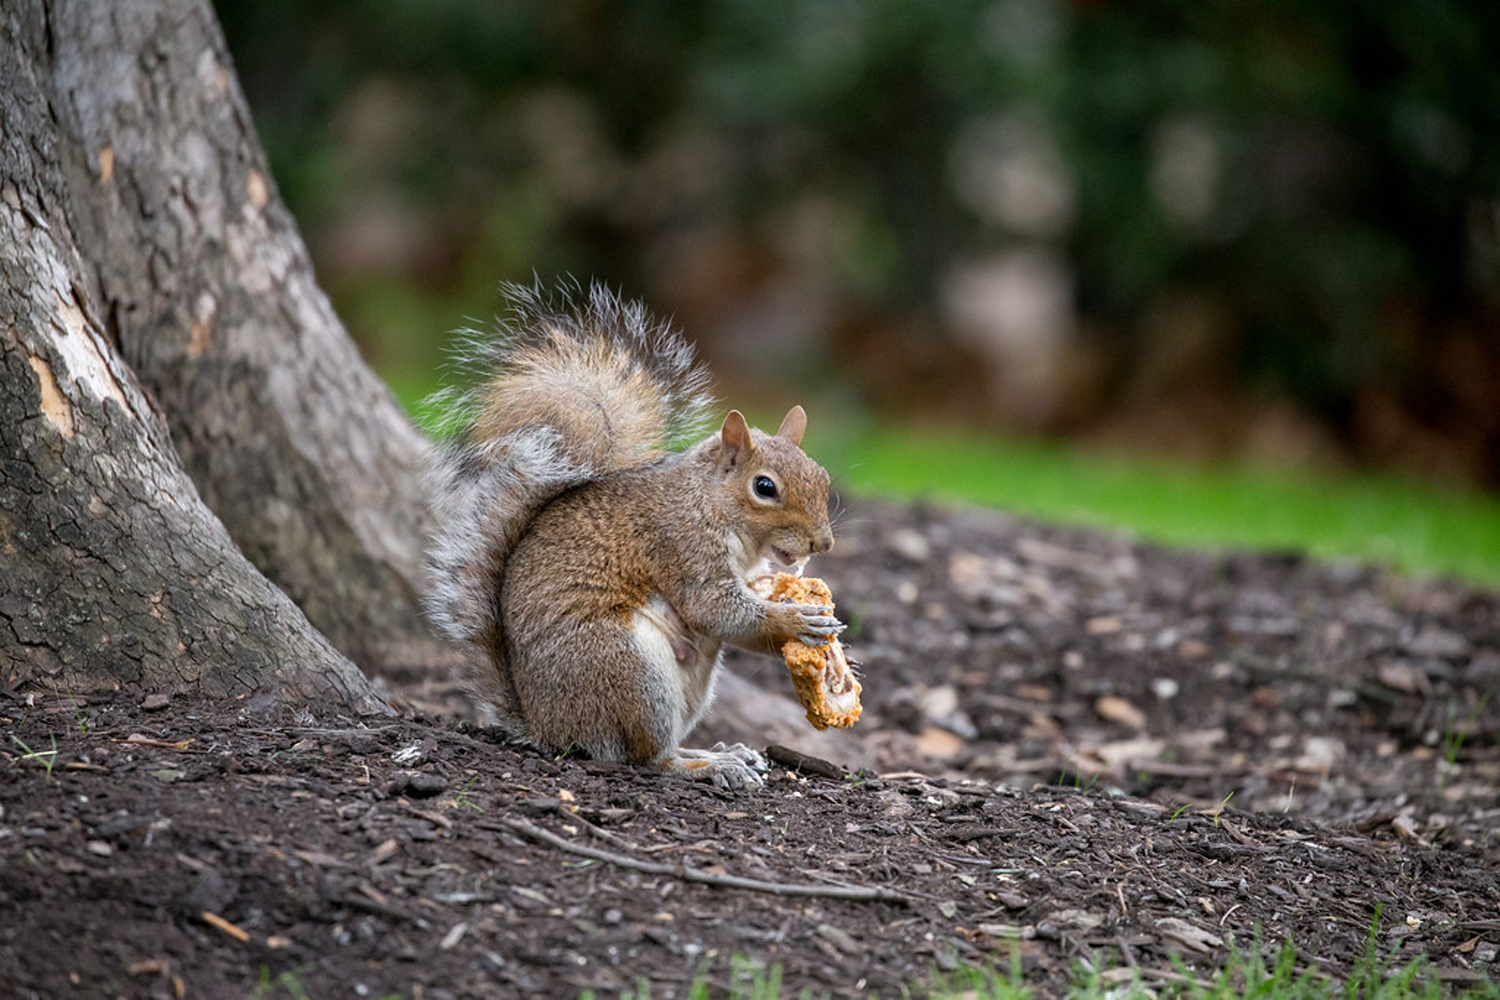 Columnist Allion Dantinne suggests becoming a squirrel to cope with finals.